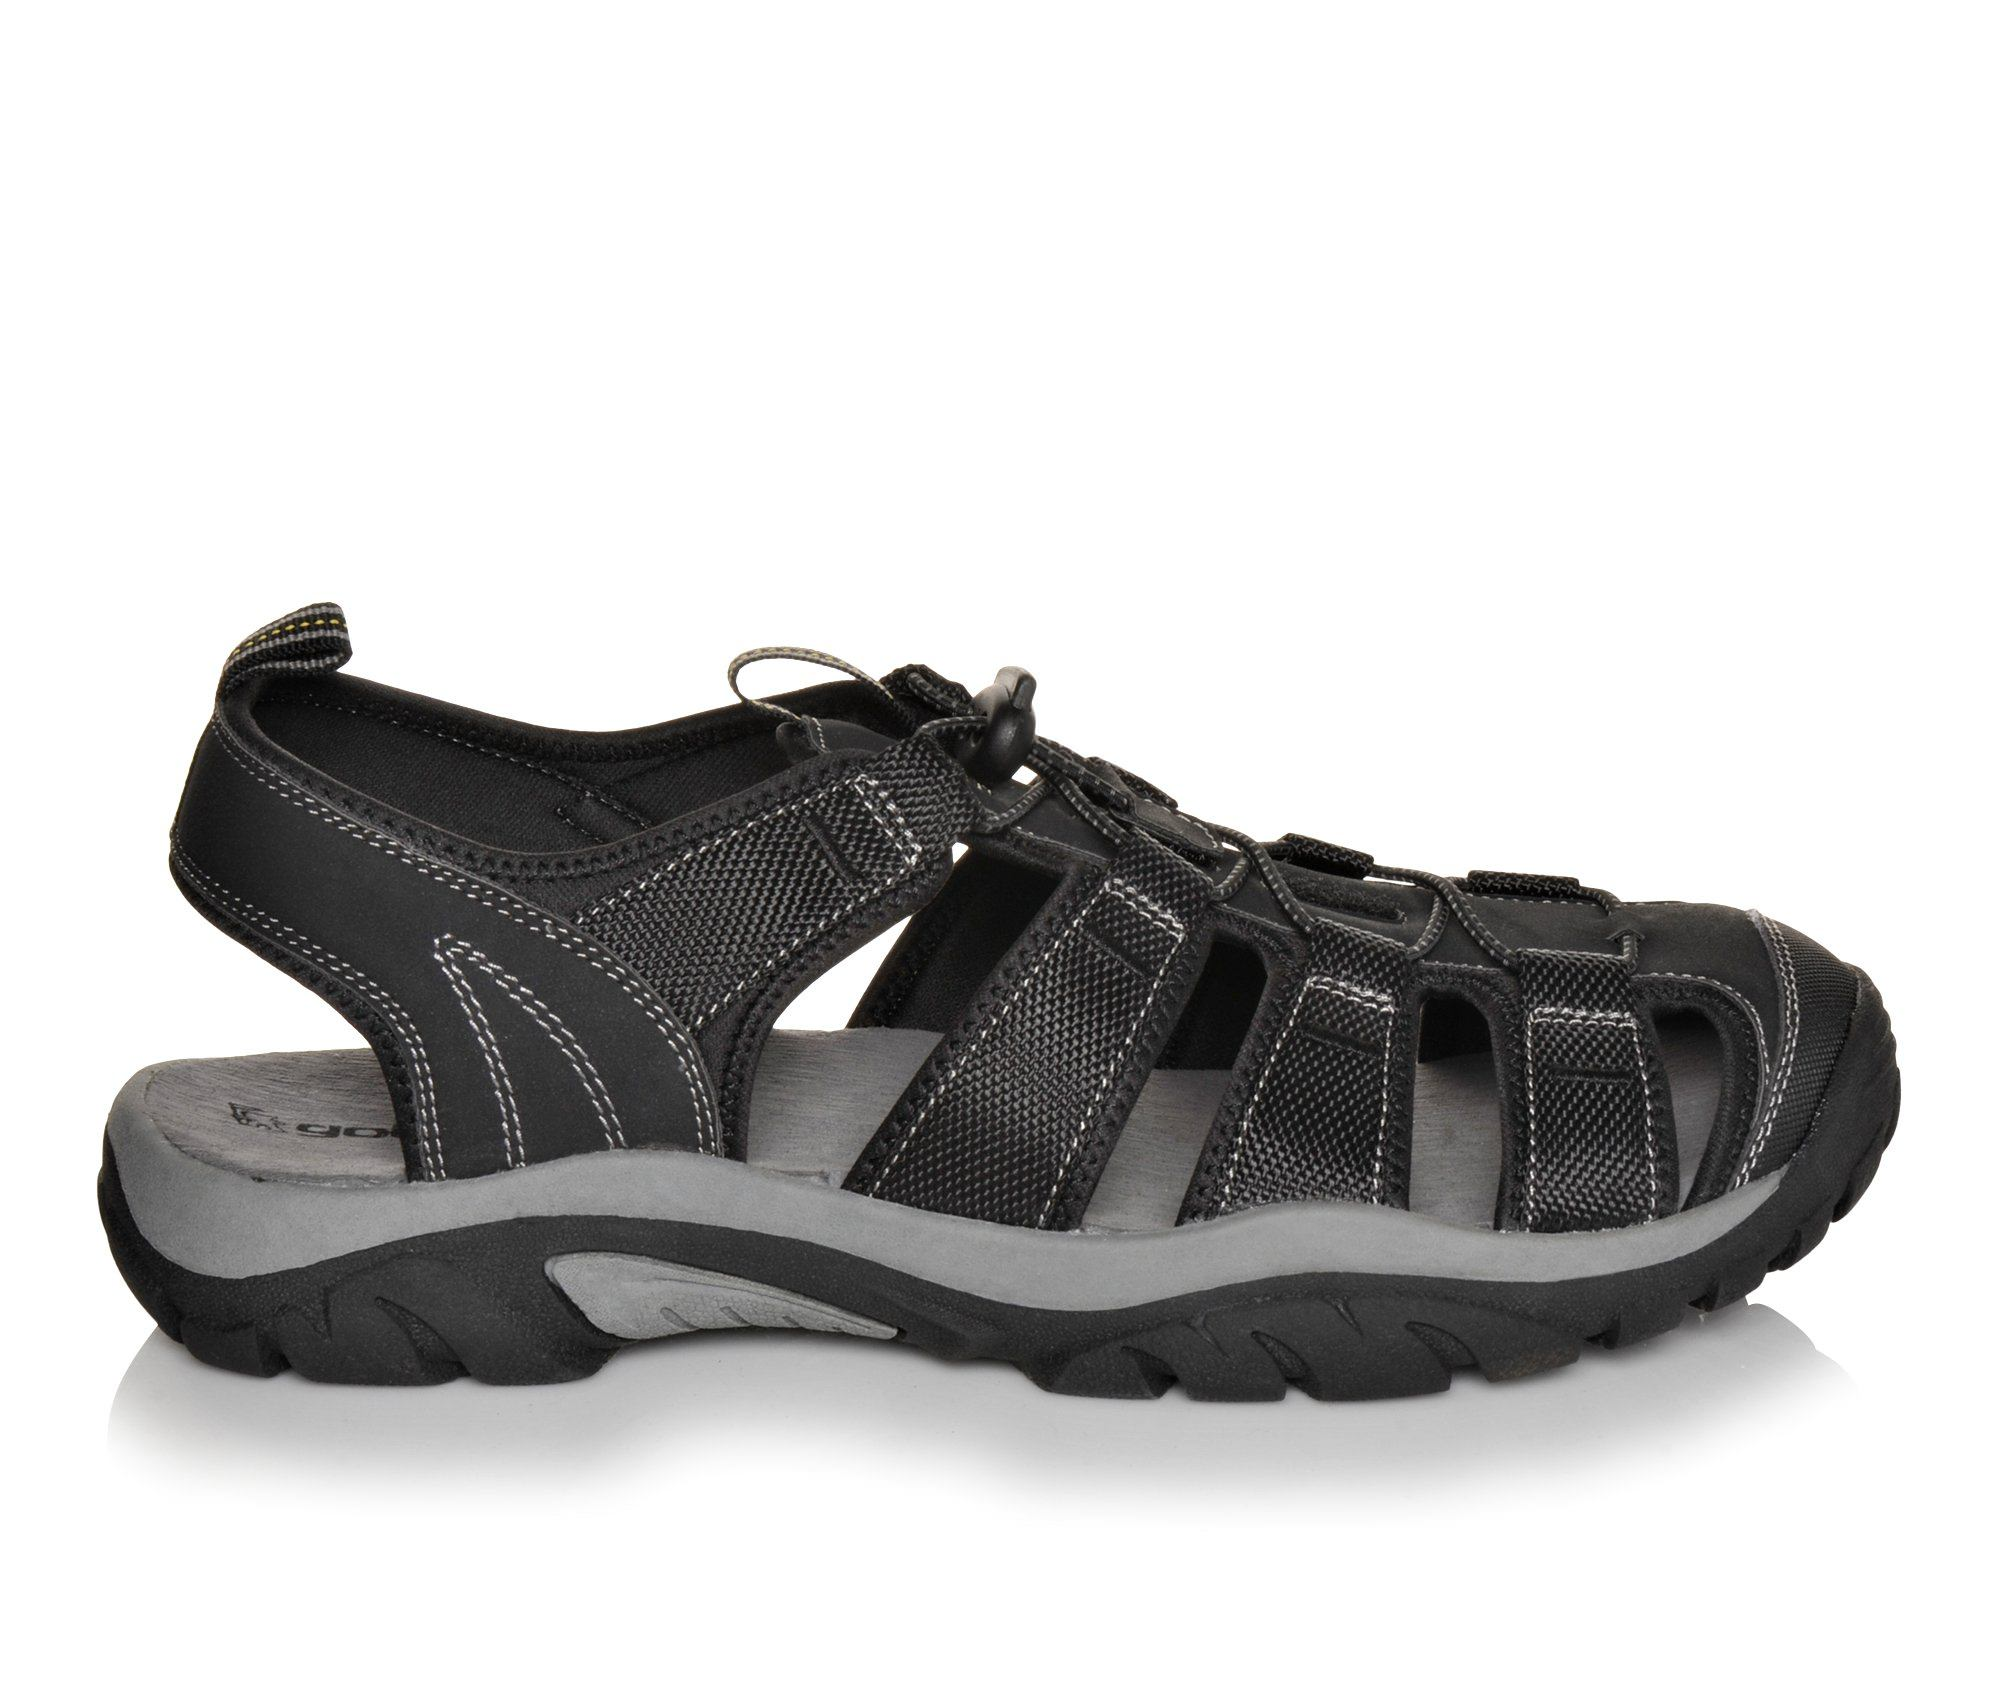 Men's Gotcha Gulch Sandals (Black)